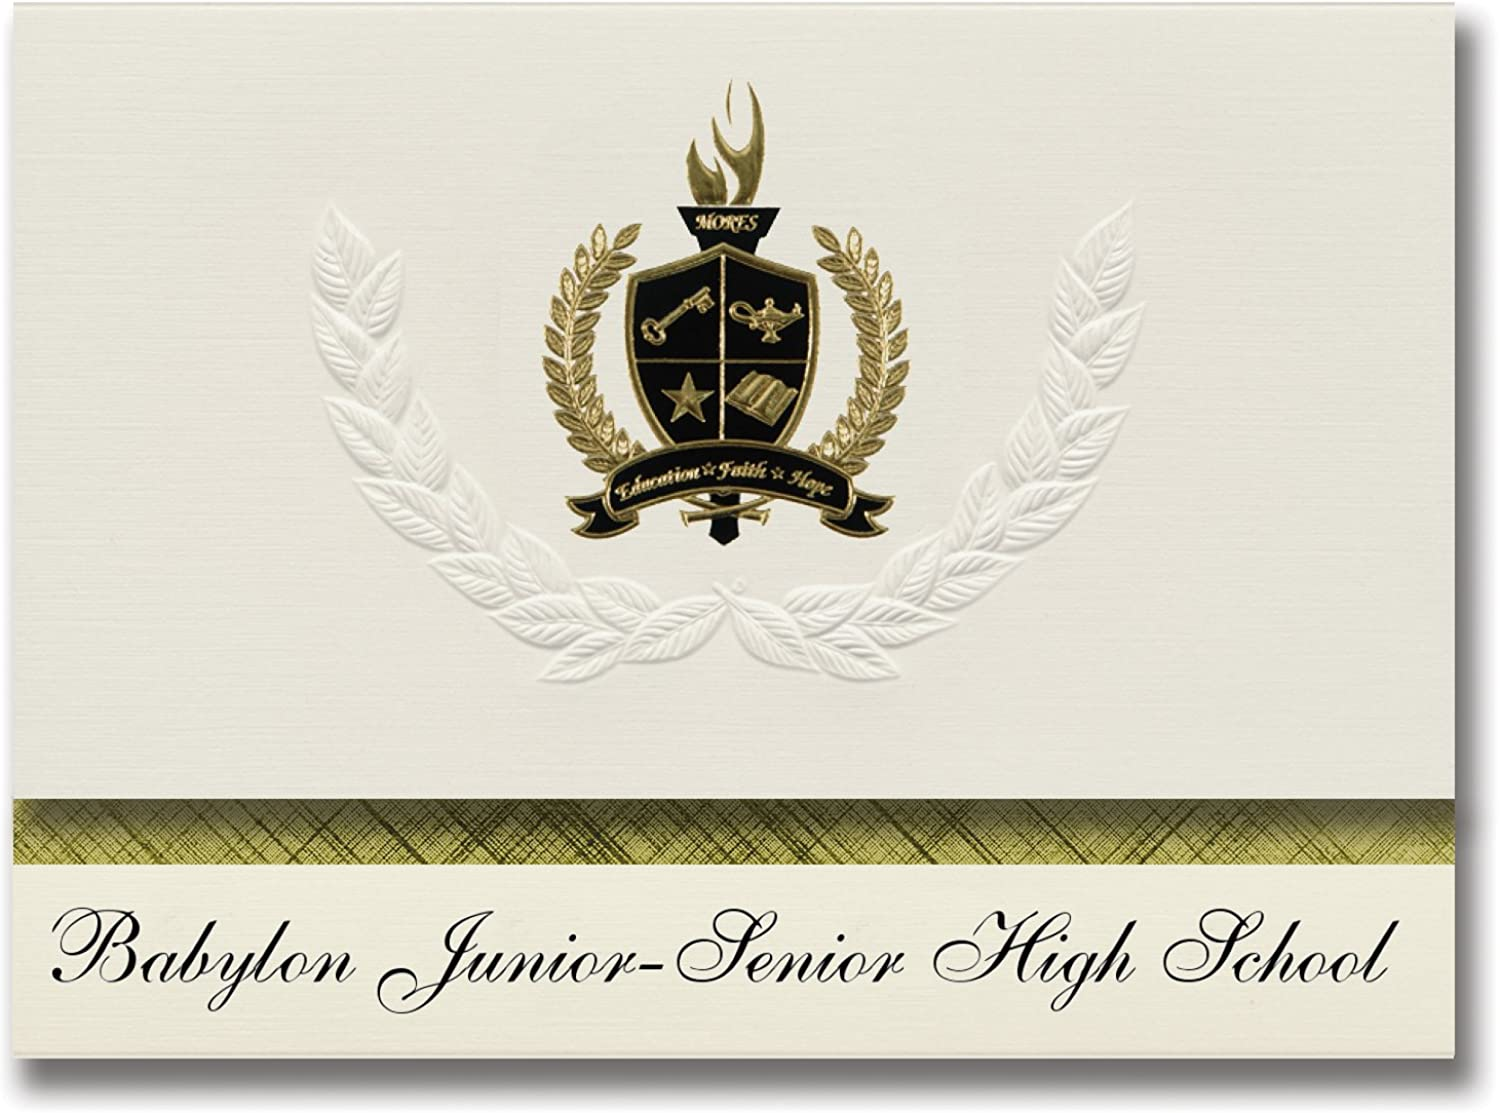 Signature Ankündigungen Babylon junior-senior High School (Babylon, NY) Graduation Ankündigungen, Presidential Stil, Elite Paket 25 Stück mit Gold & Schwarz Metallic Folie Dichtung B078TT72L7   | Mode-Muster